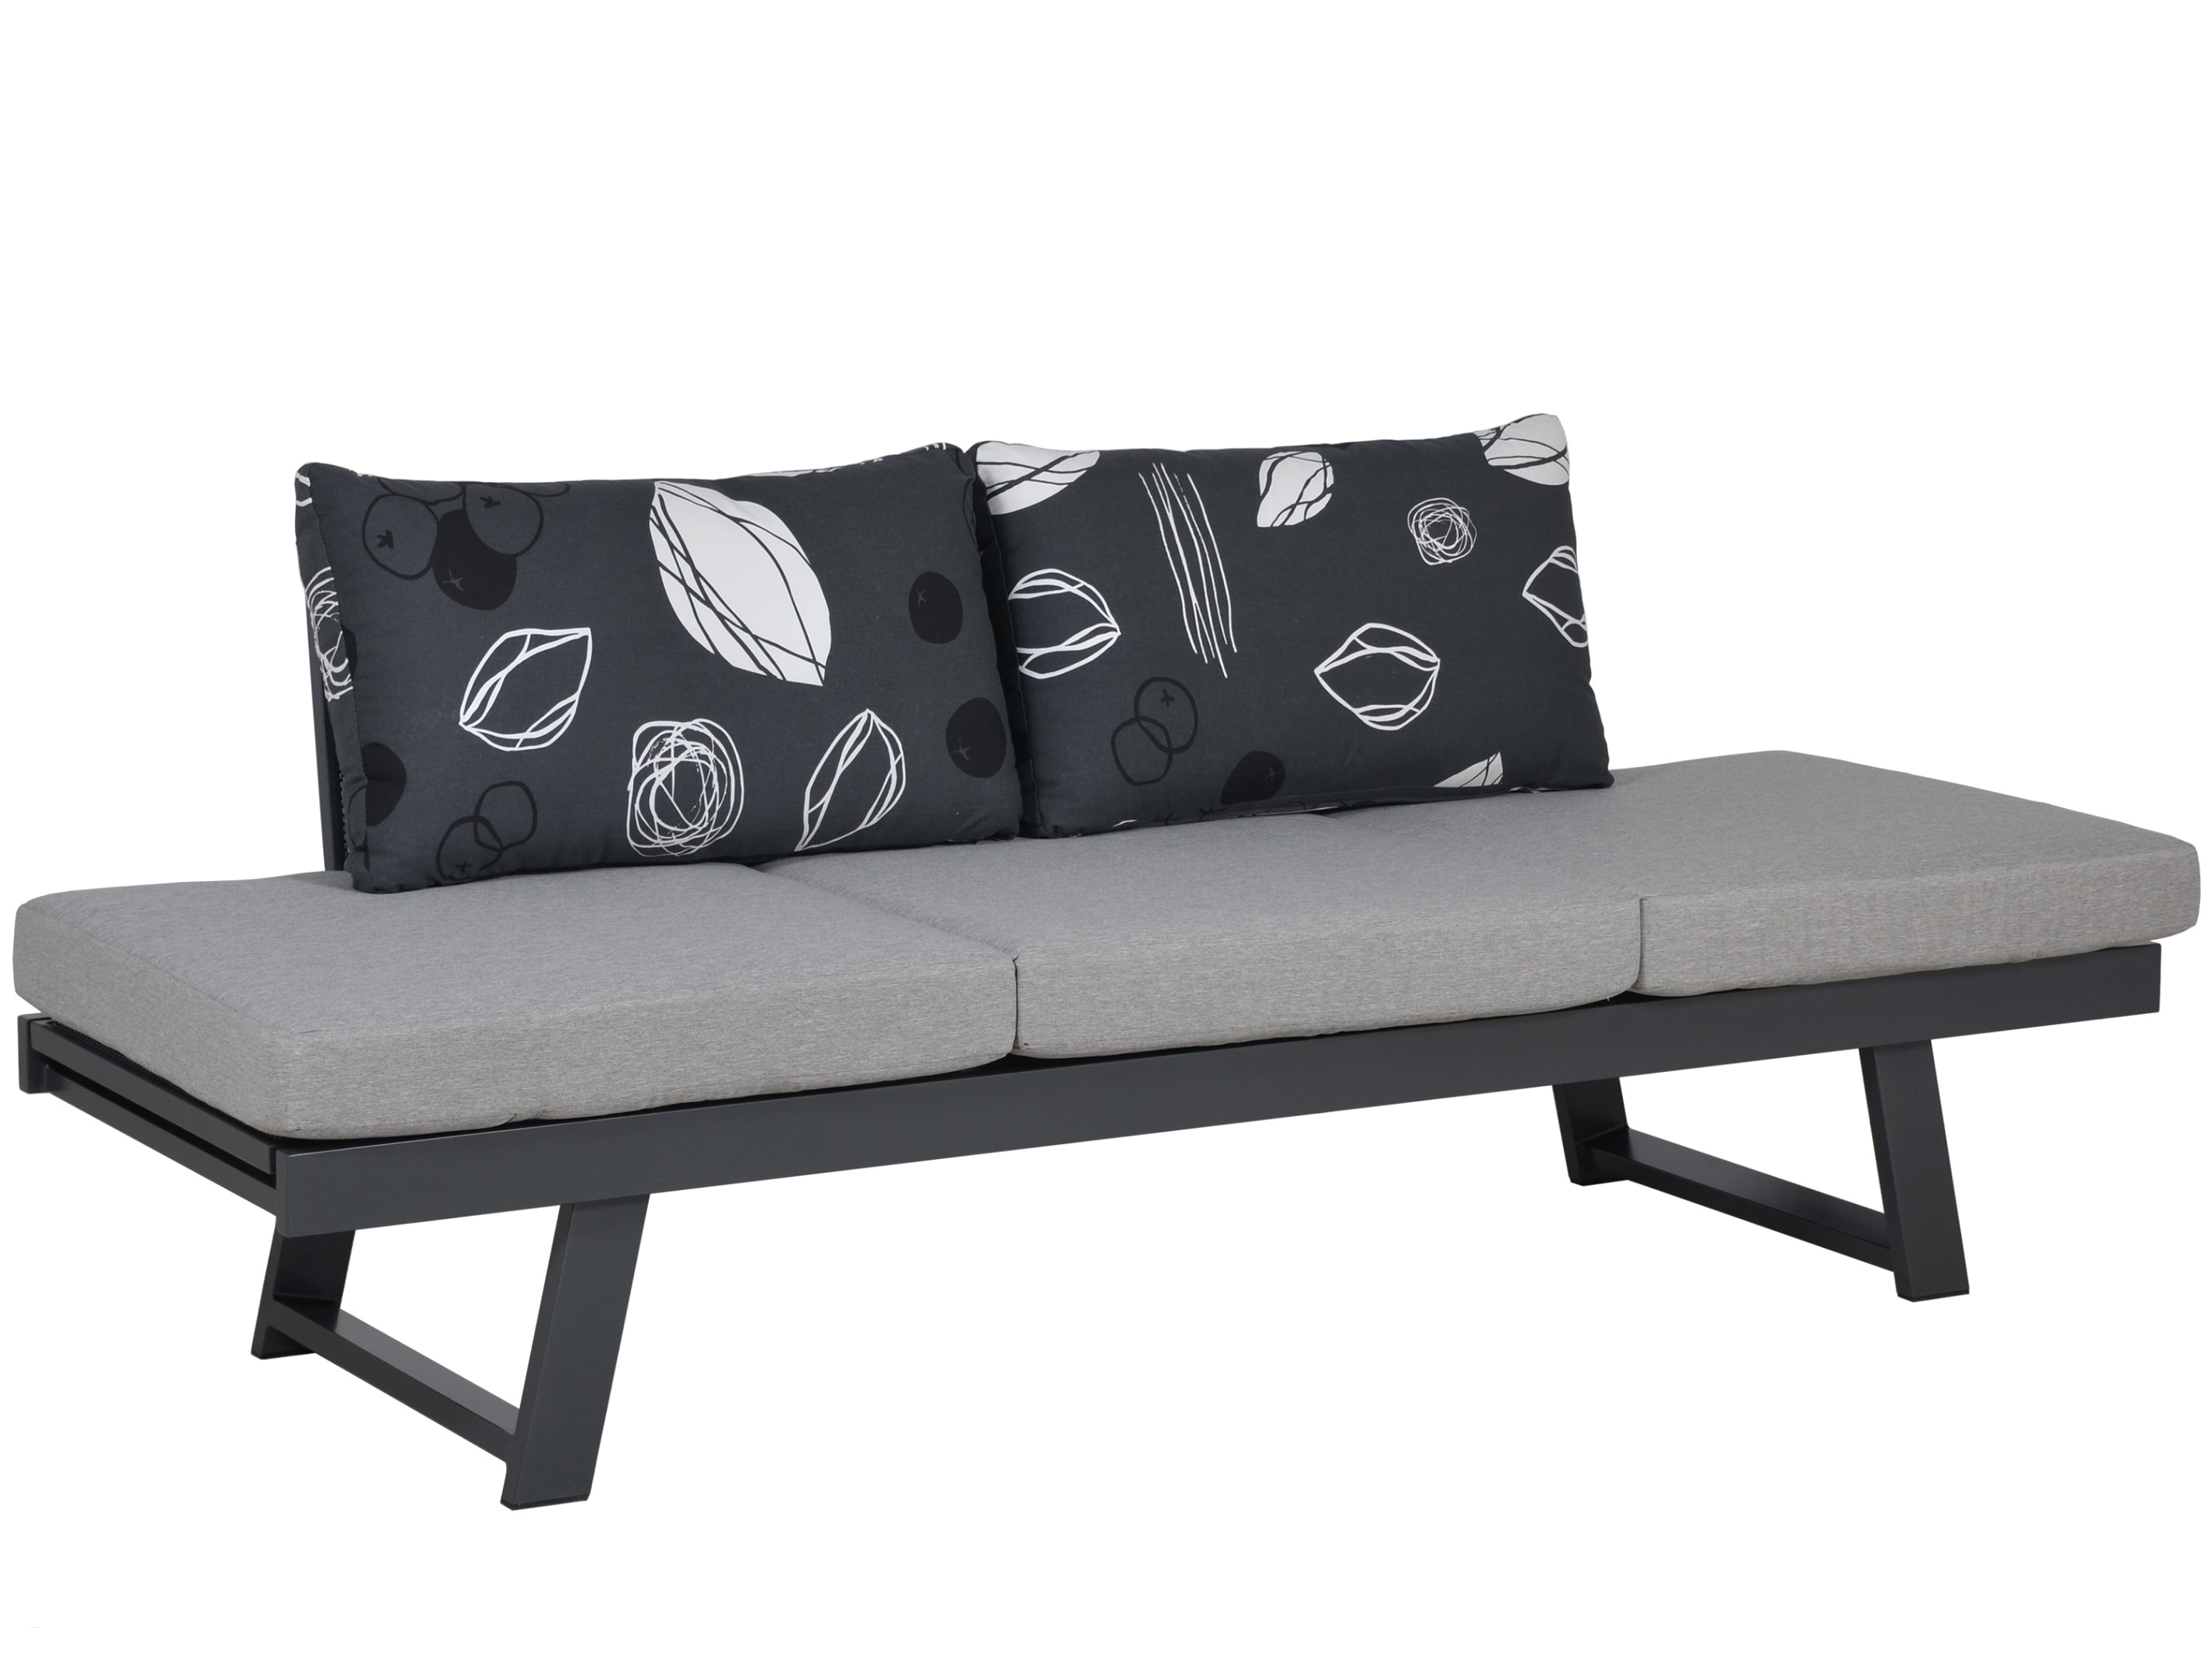 Benches at Walmart Walmart Better Homes and Gardens Patio Furniture Fresh Patio Bench